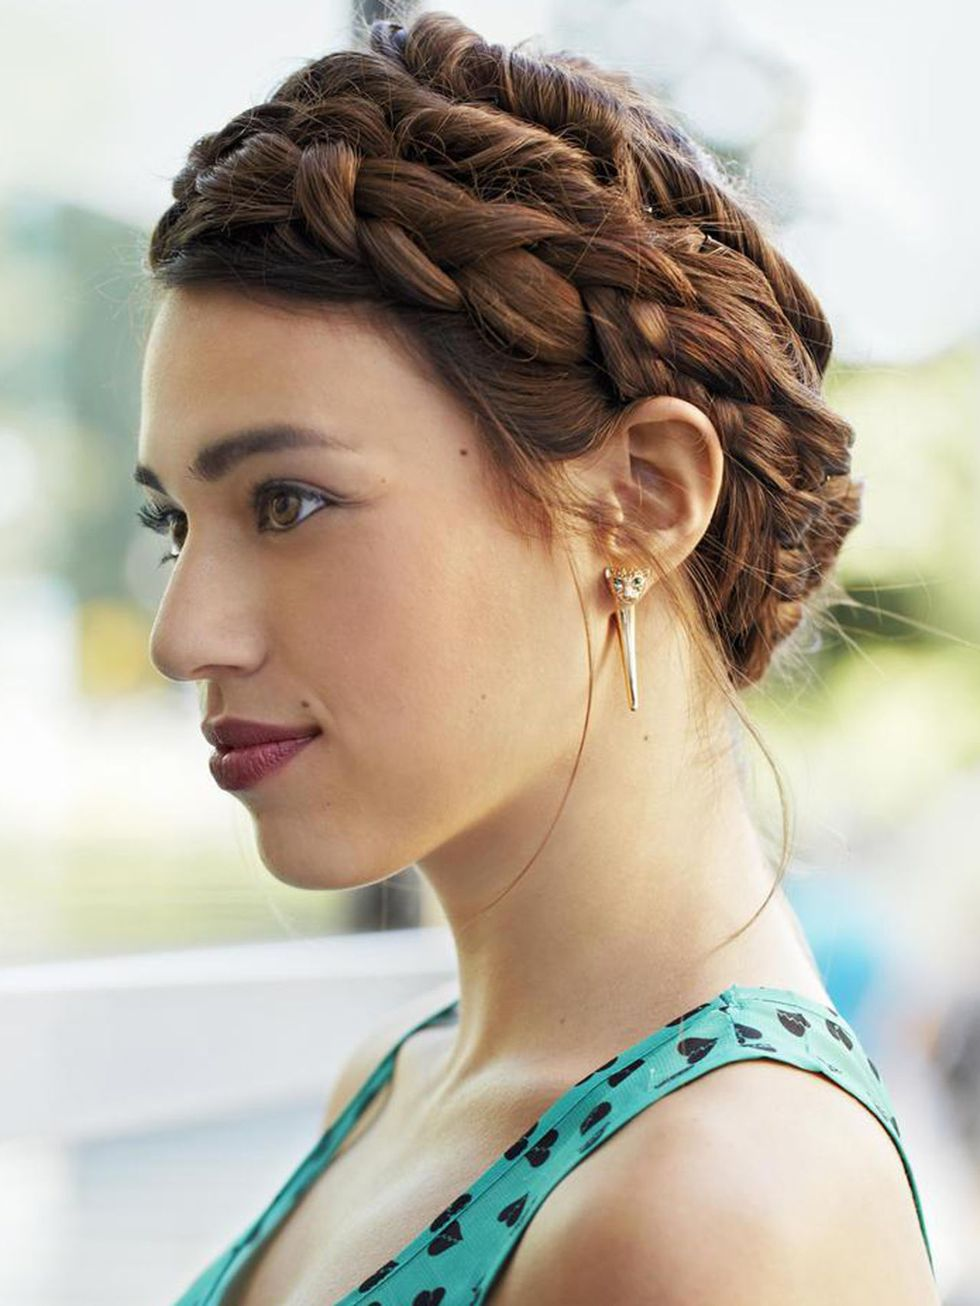 hair-ideas-style-what-to-wear-newyearseve-nye-holiday-outfits-winter-braid-milkmaid-crown.jpg